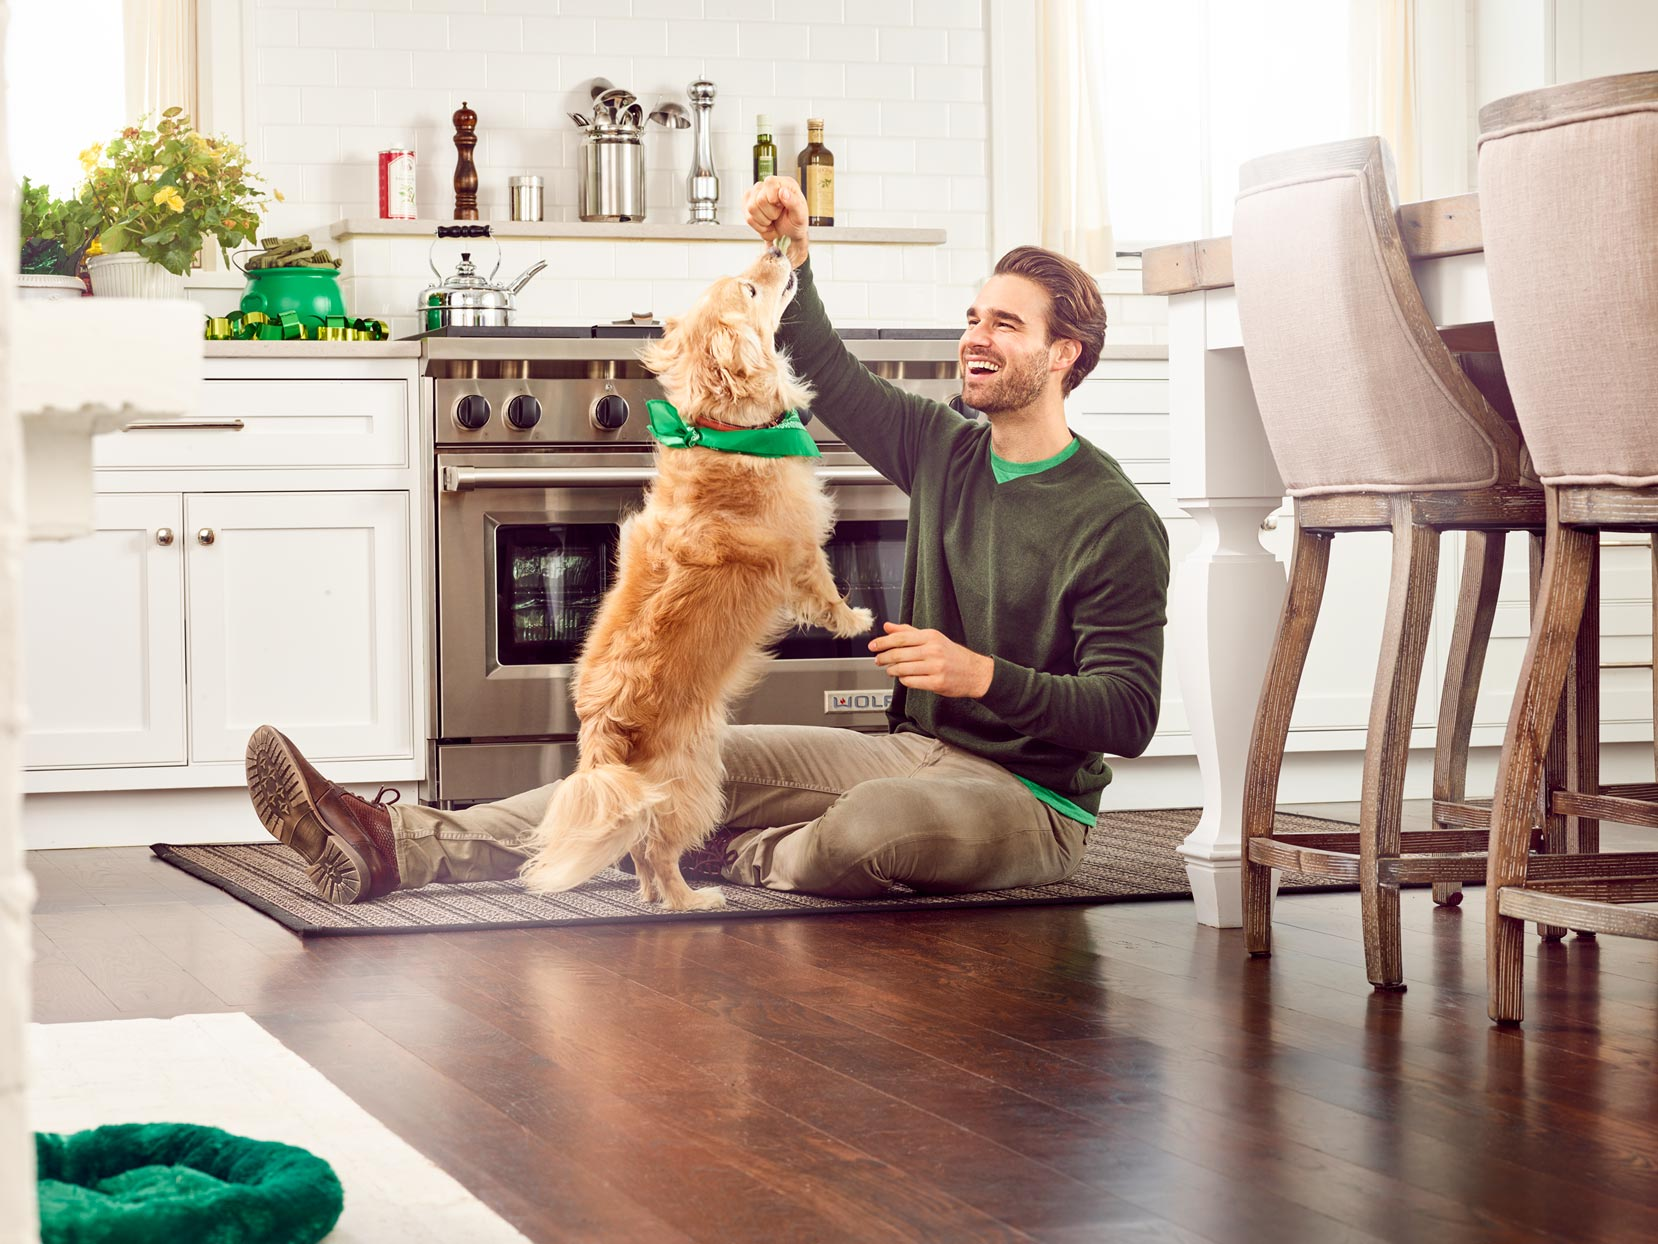 Mark DeLong - Commercial Photography - Man playing on kitchen floor with his golden retriever.